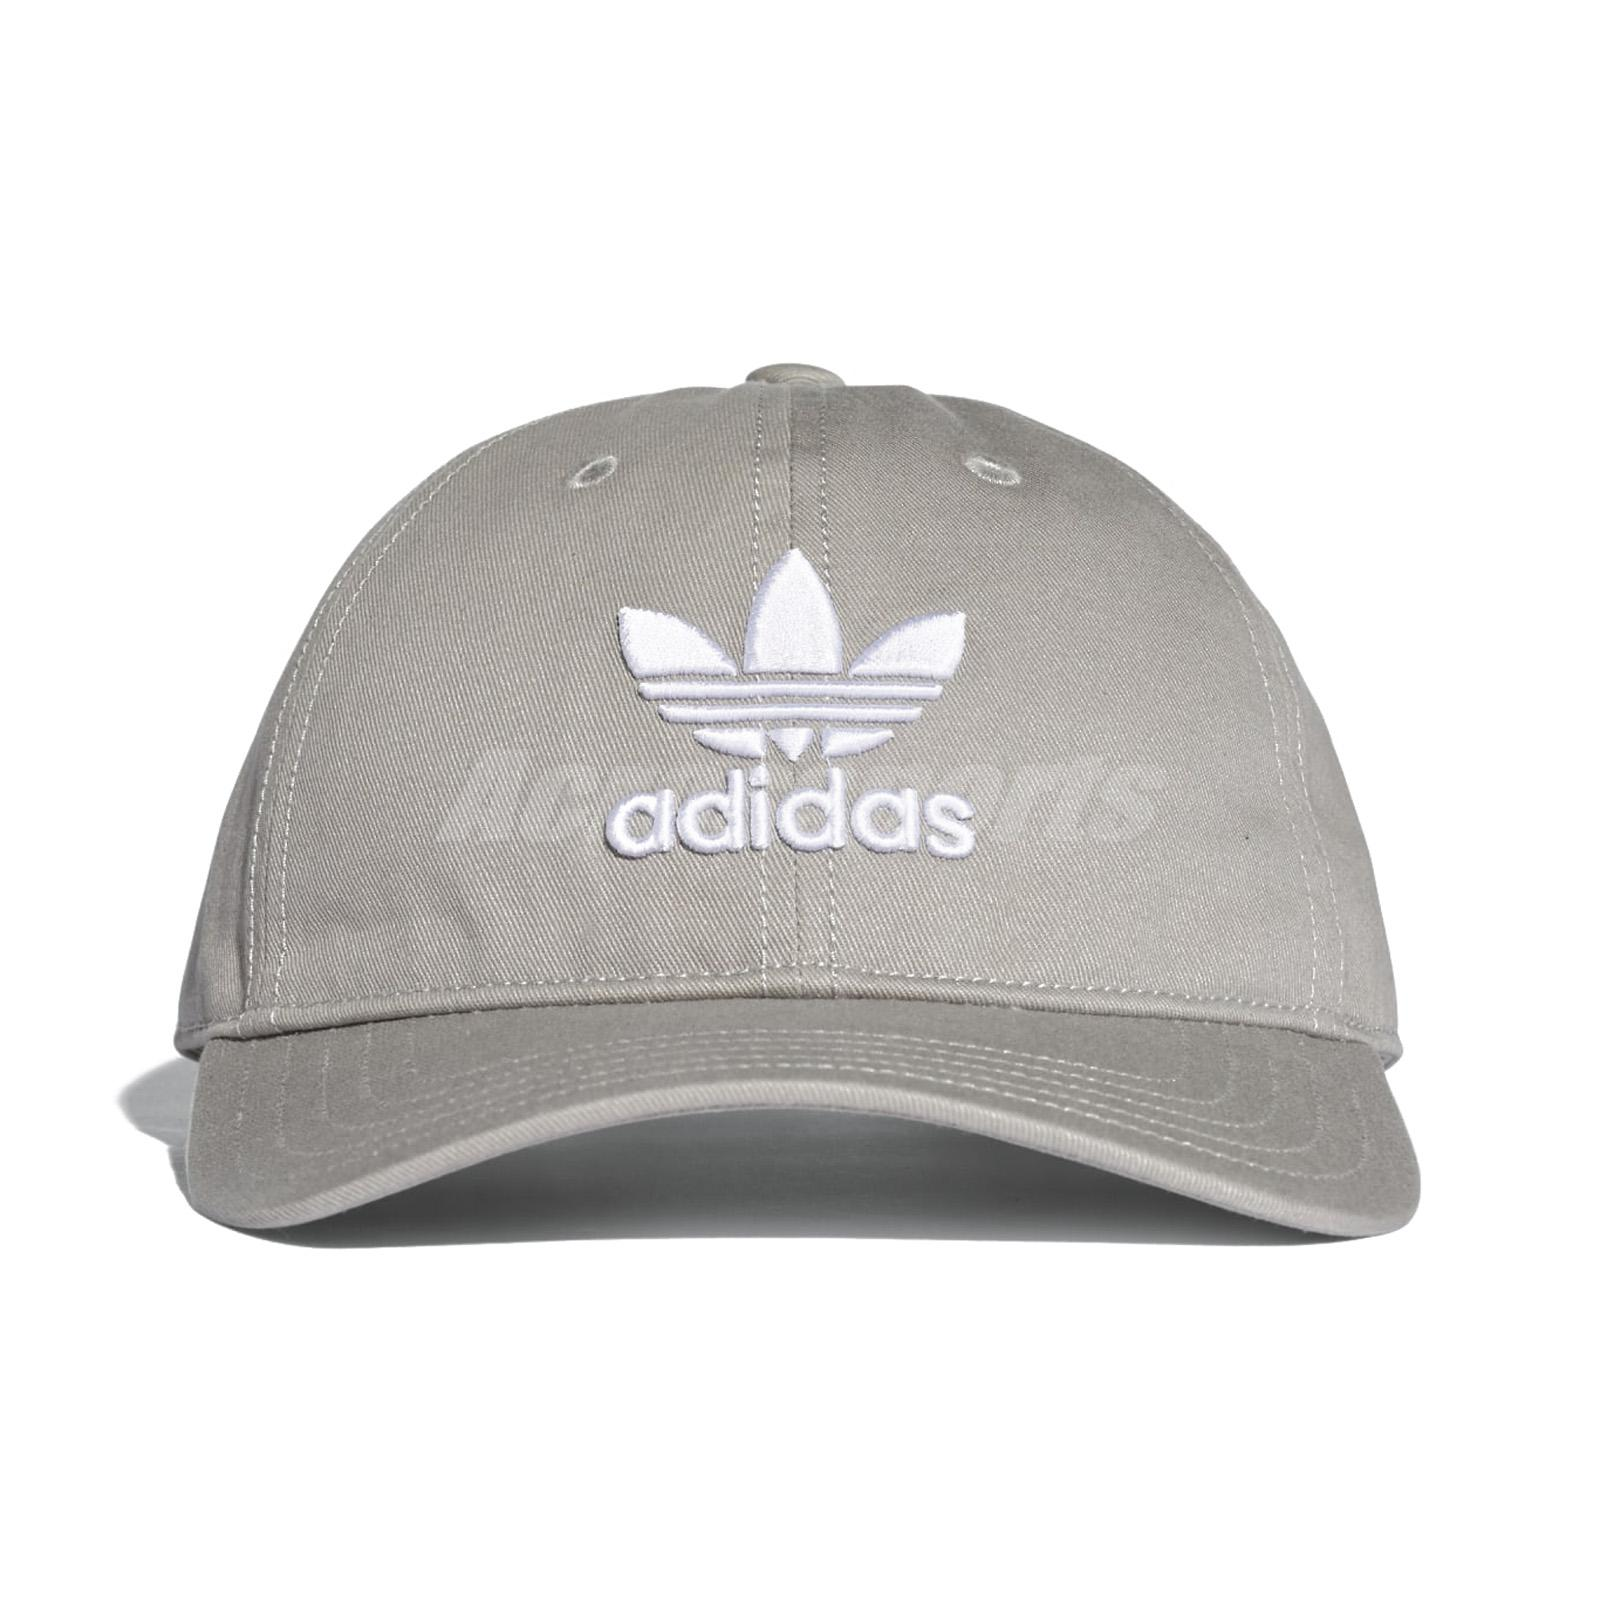 2f677c8c3ae75 adidas Originals Trefoil Classic Grey White Cap Adjustable Strap Hat BK7282